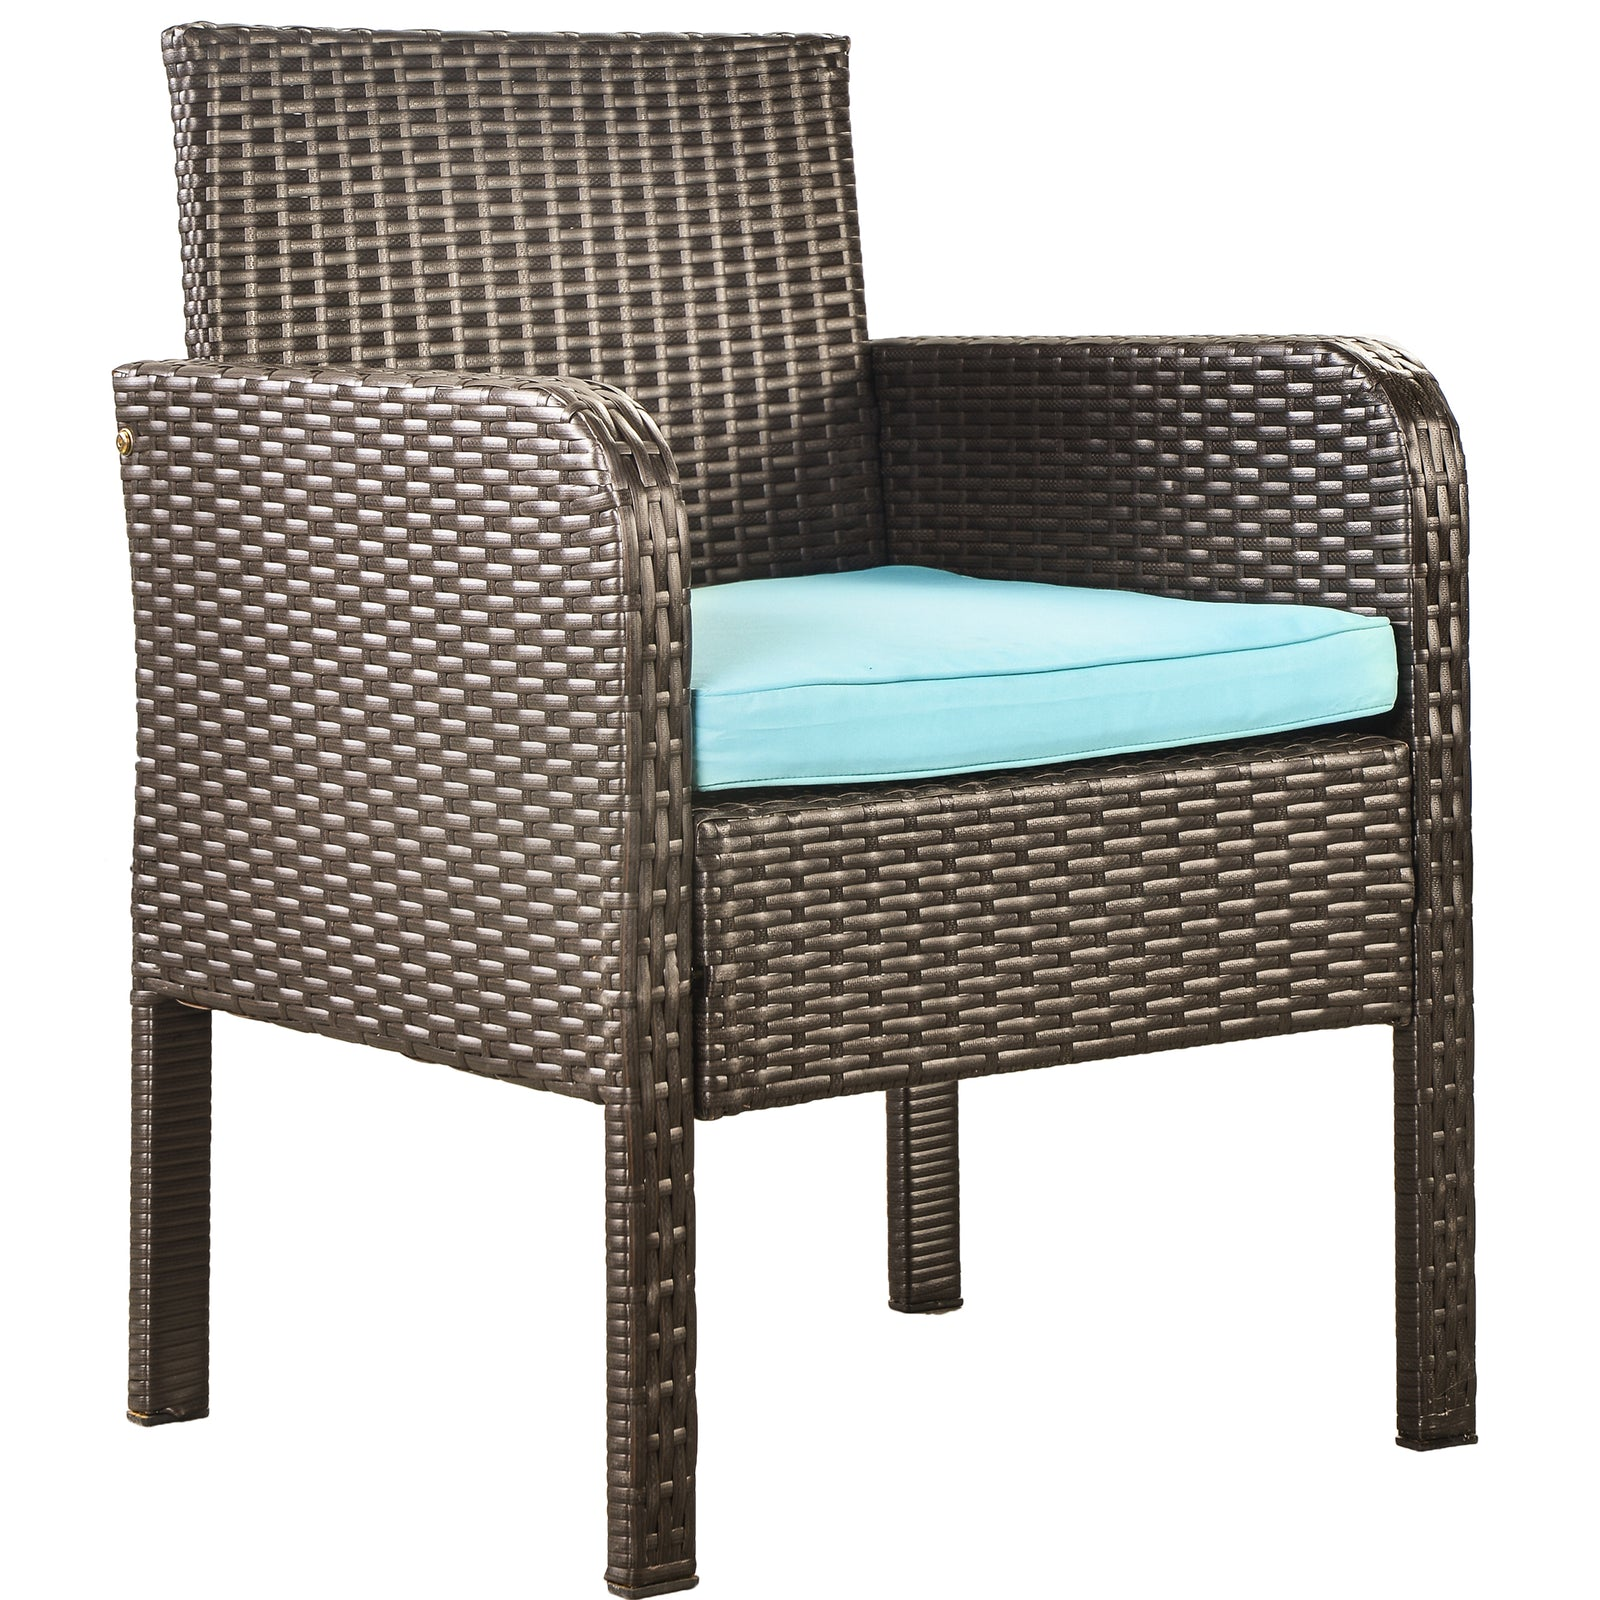 4 Counts - Rattan Sofa Seating Group with Cushions, Outdoor Rattan sofa Blue - Chair